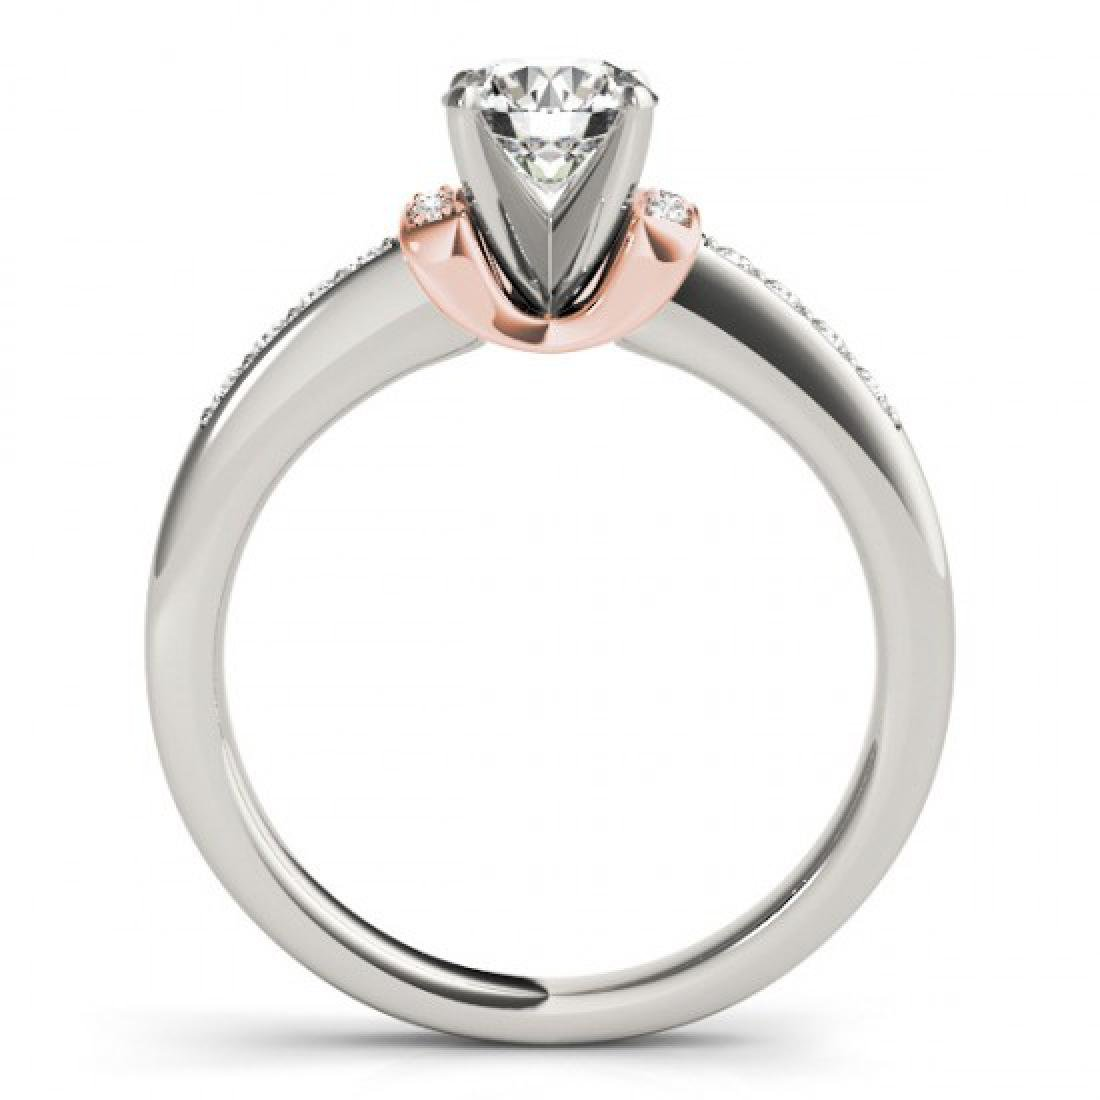 0.61 CTW Certified VS/SI Diamond Solitaire Ring 14K - 2